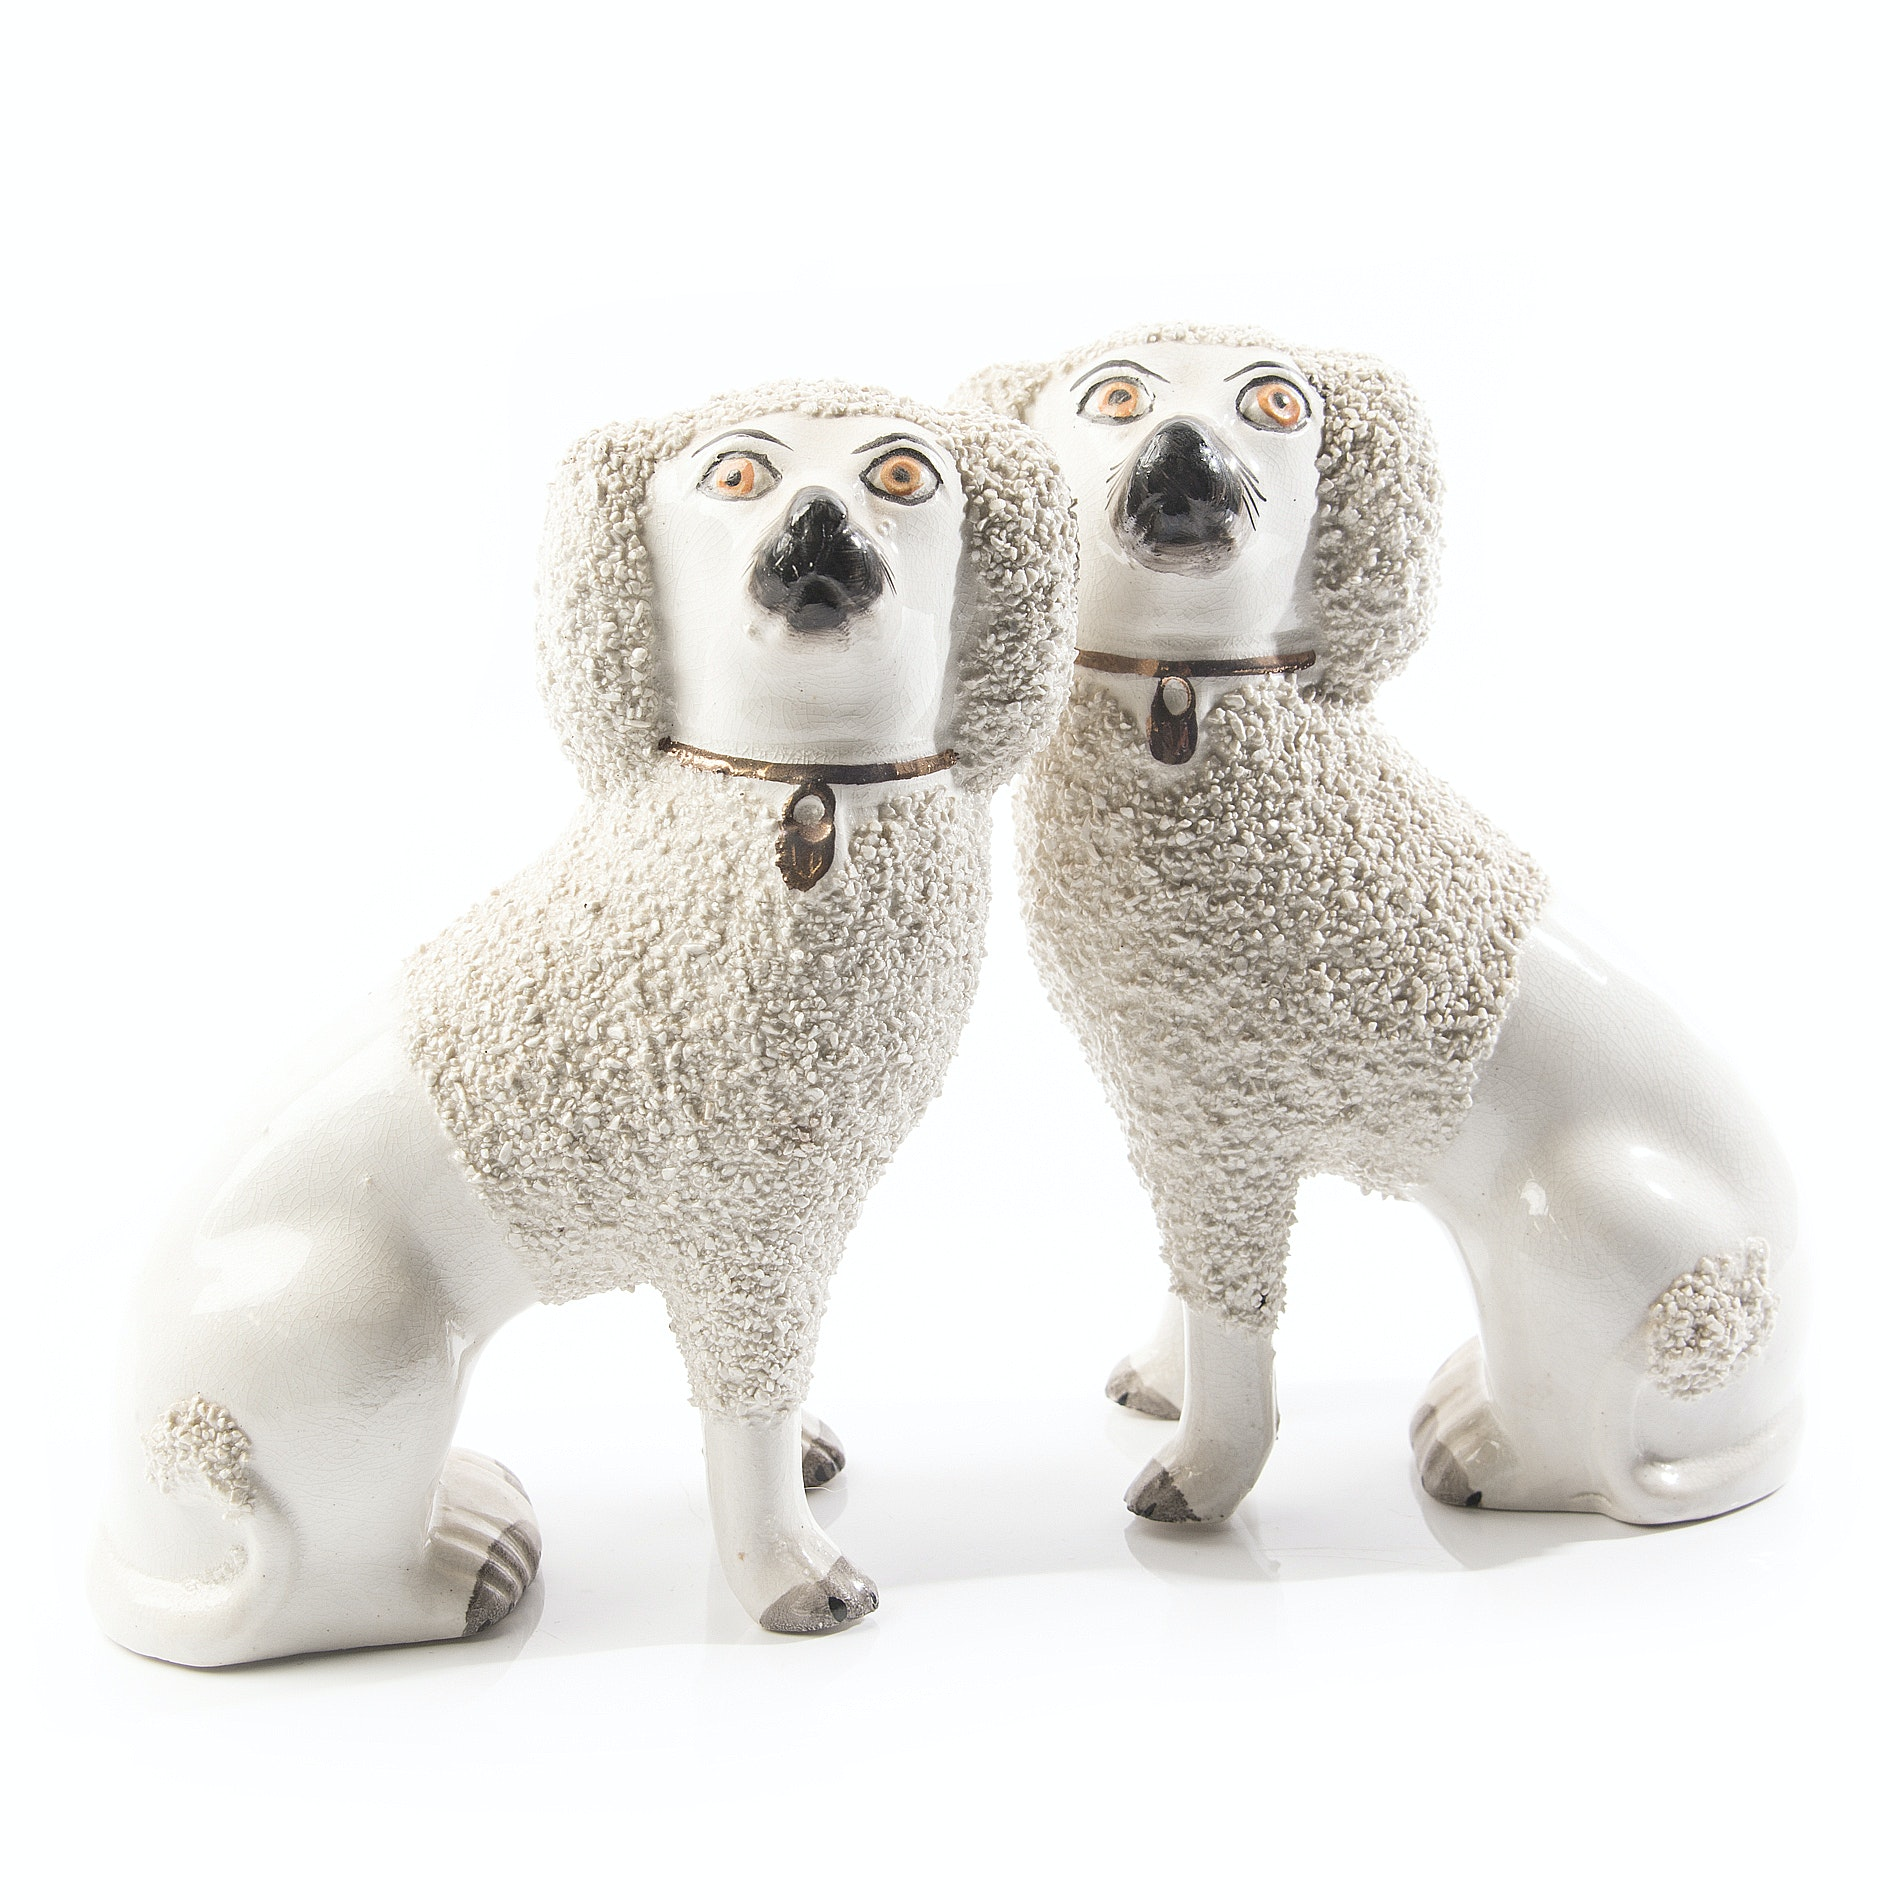 Antique Staffordshire Style Dogs